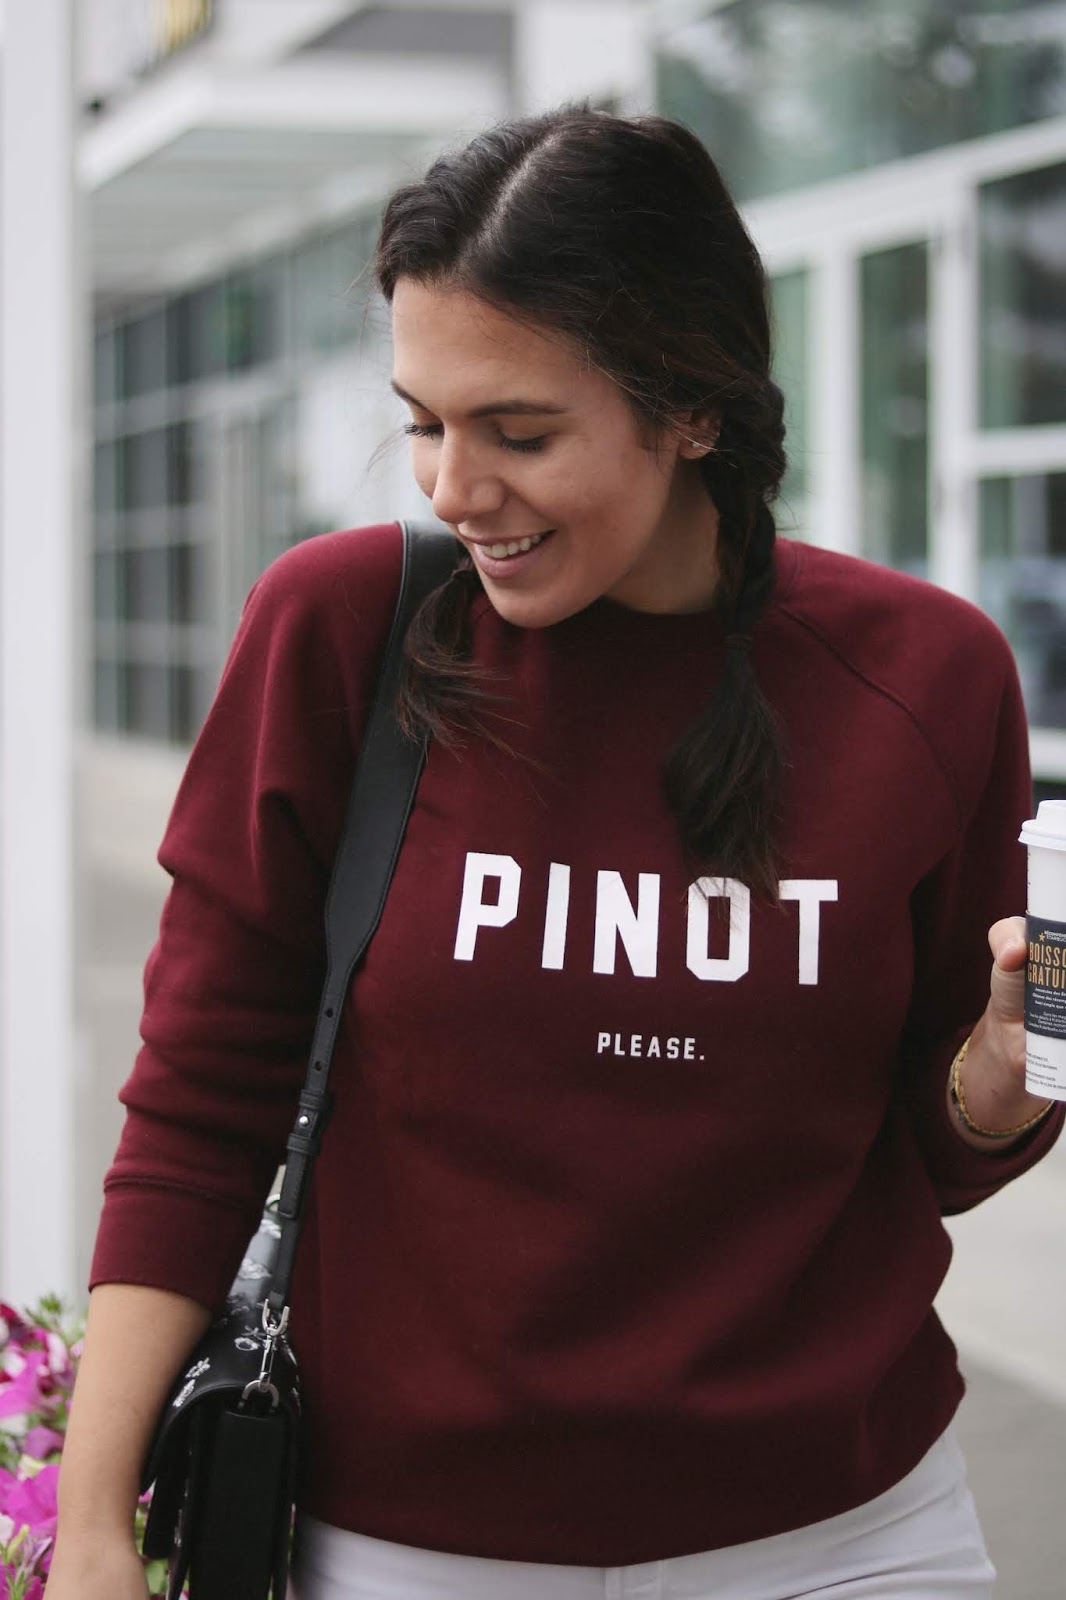 Vancouver fashion blogger Aleesha Harris wears the Pinot, Please! sweater from Brunette the Label and Meimoi Wines.